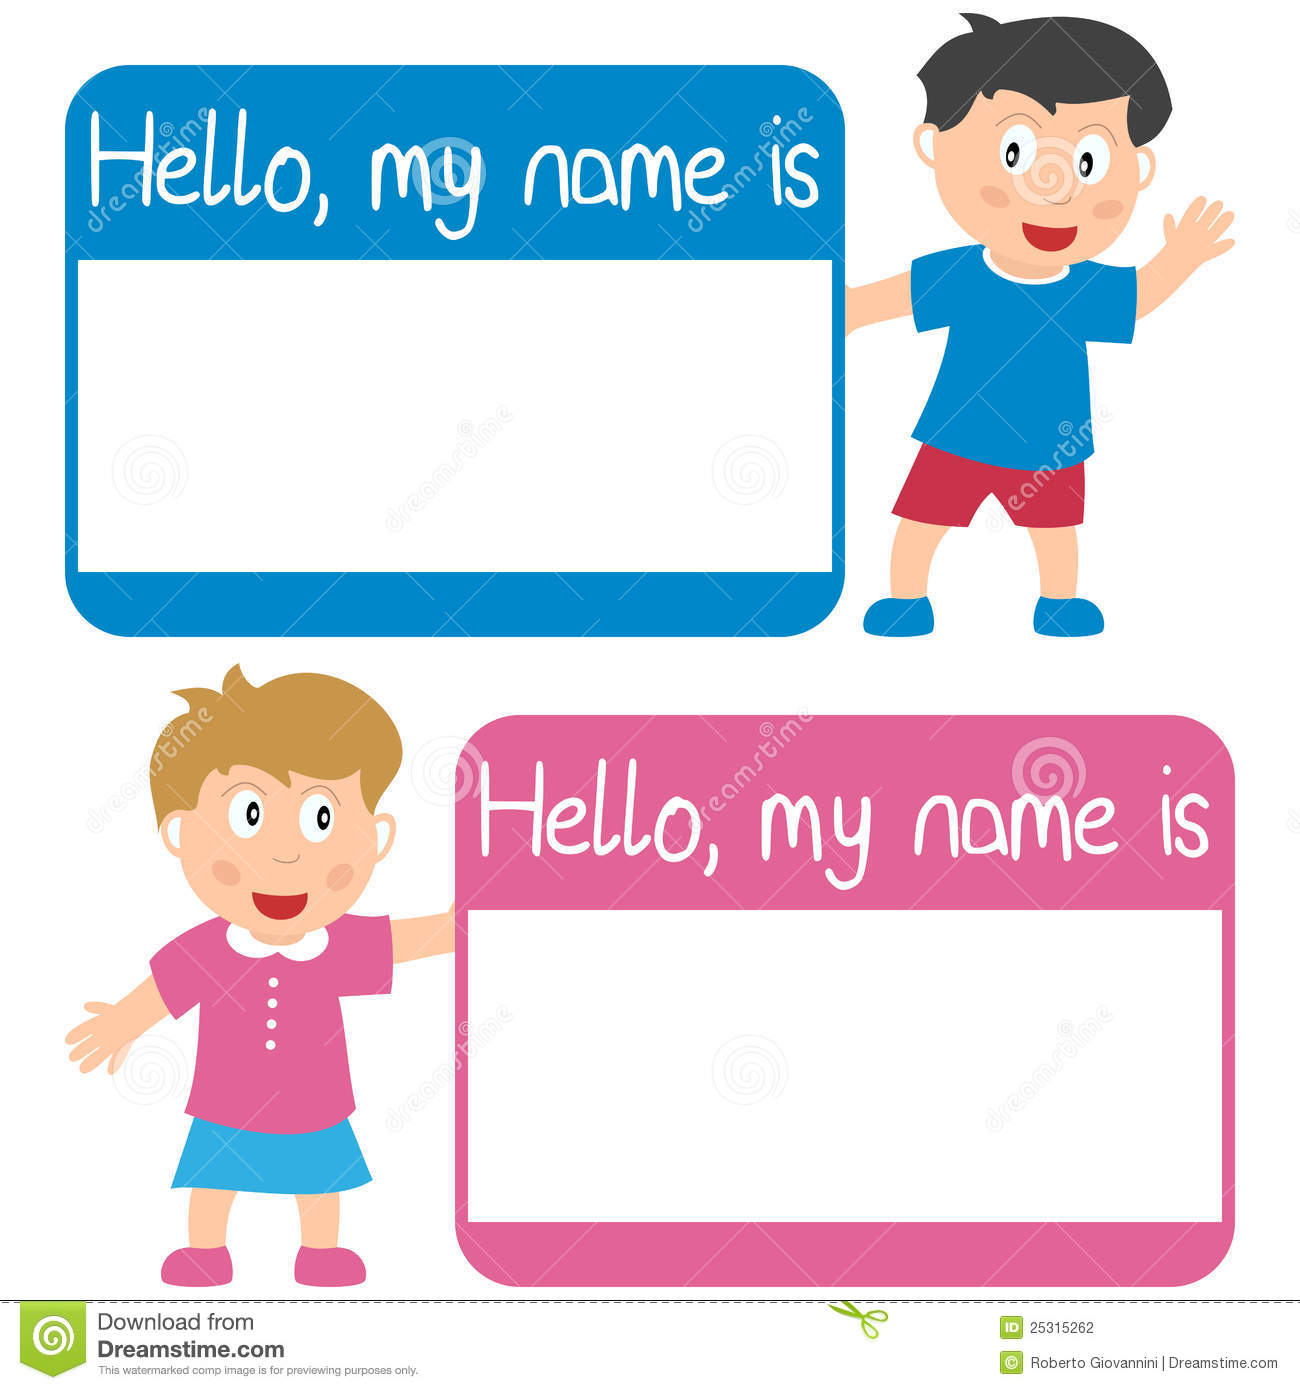 Boys Premium Name Labels: Name Tag With Kids Stock Vector. Illustration Of Isolated